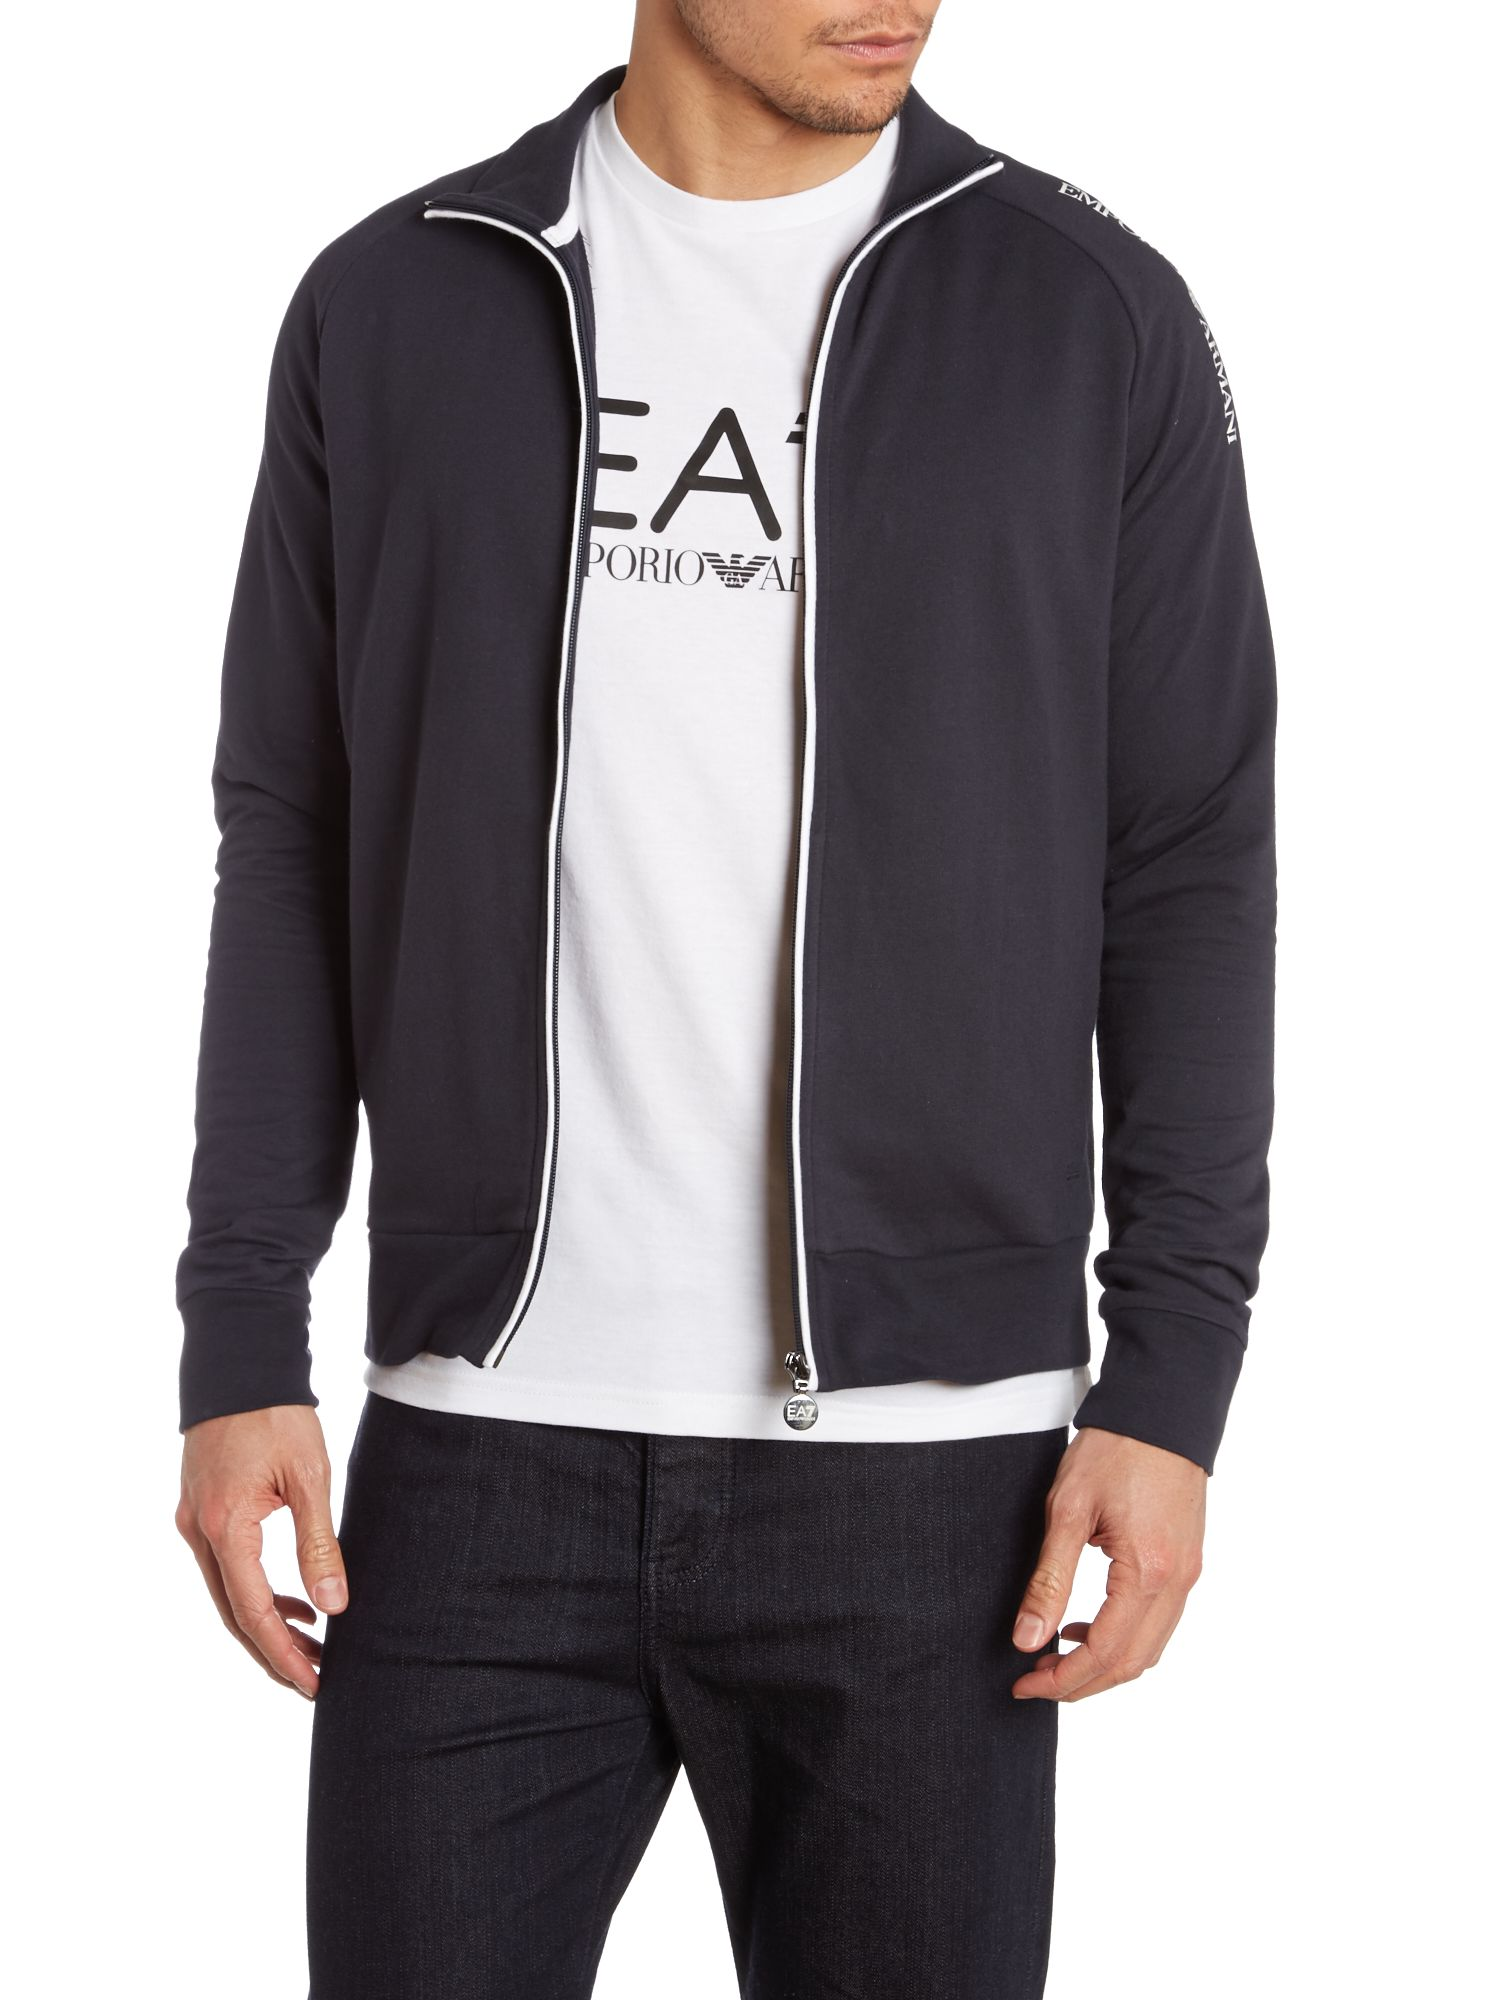 Zip through train big arm logo sweatshirt